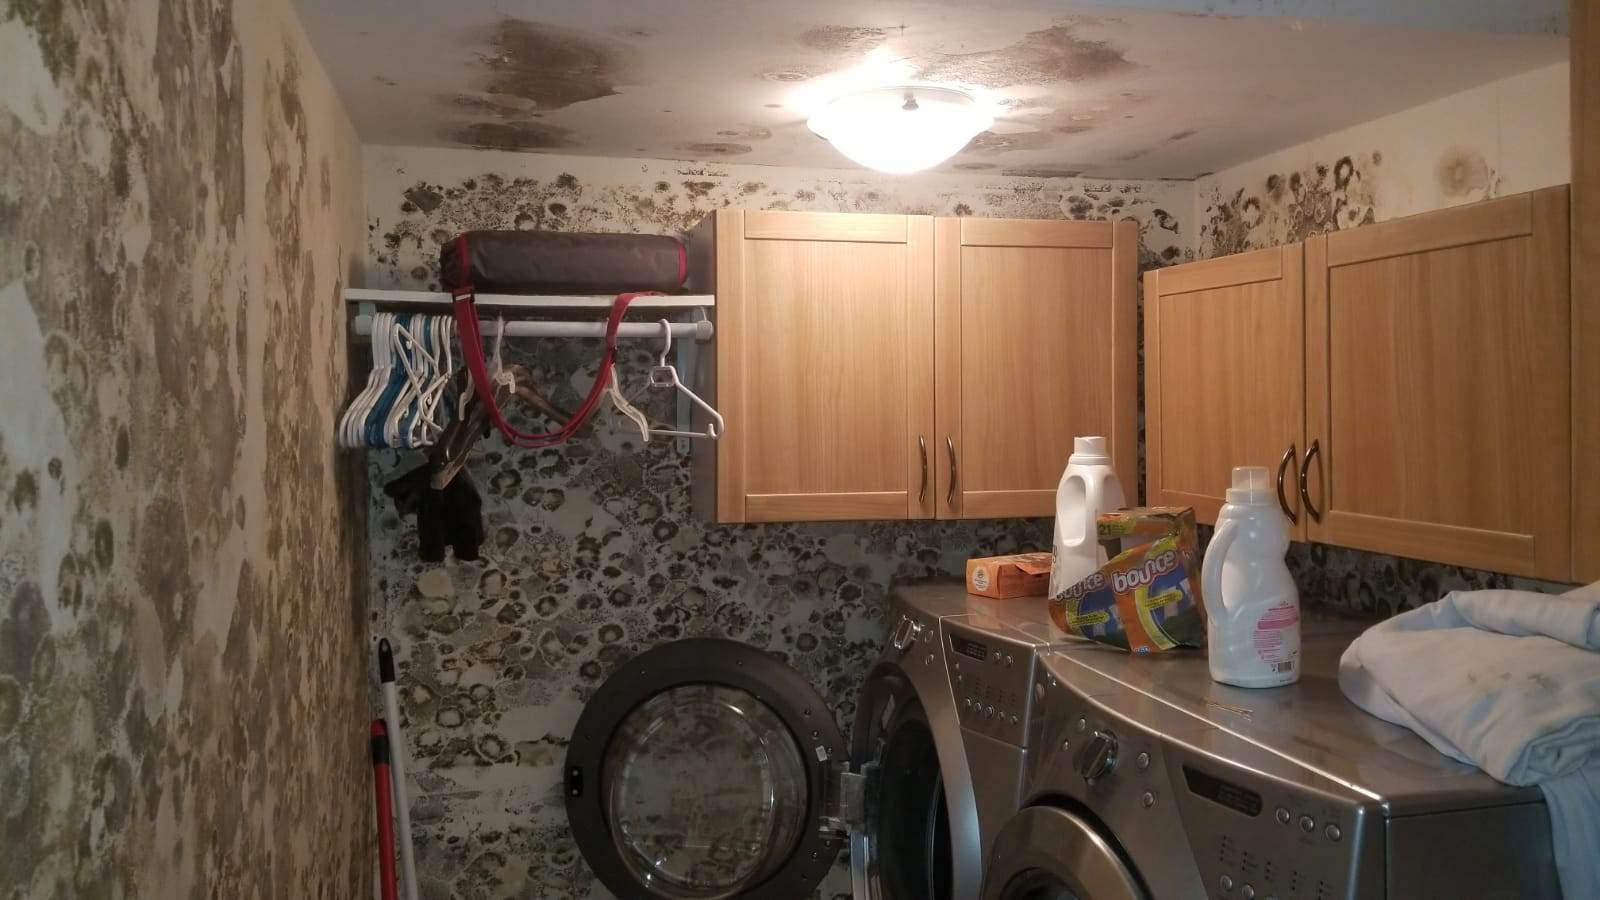 mold spores, mold growth, how to prevent mold, mold remediaiton montreal east, mold removal montreal east, mold services montreal east,